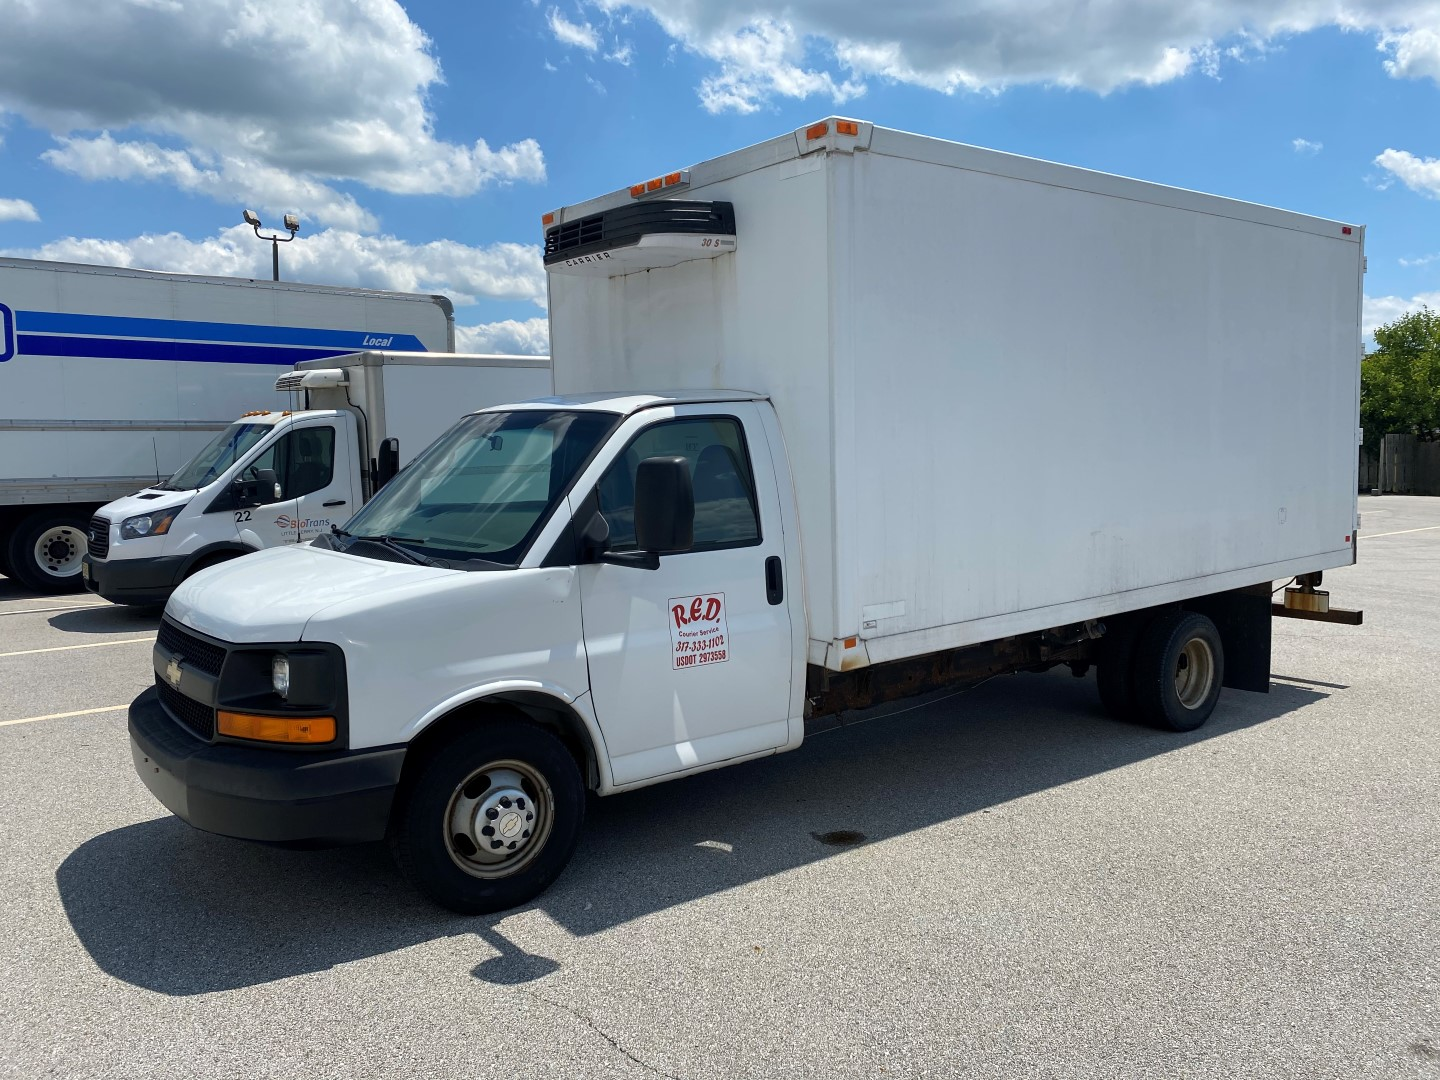 August Consignment Online Auction In Indianapolis, IN